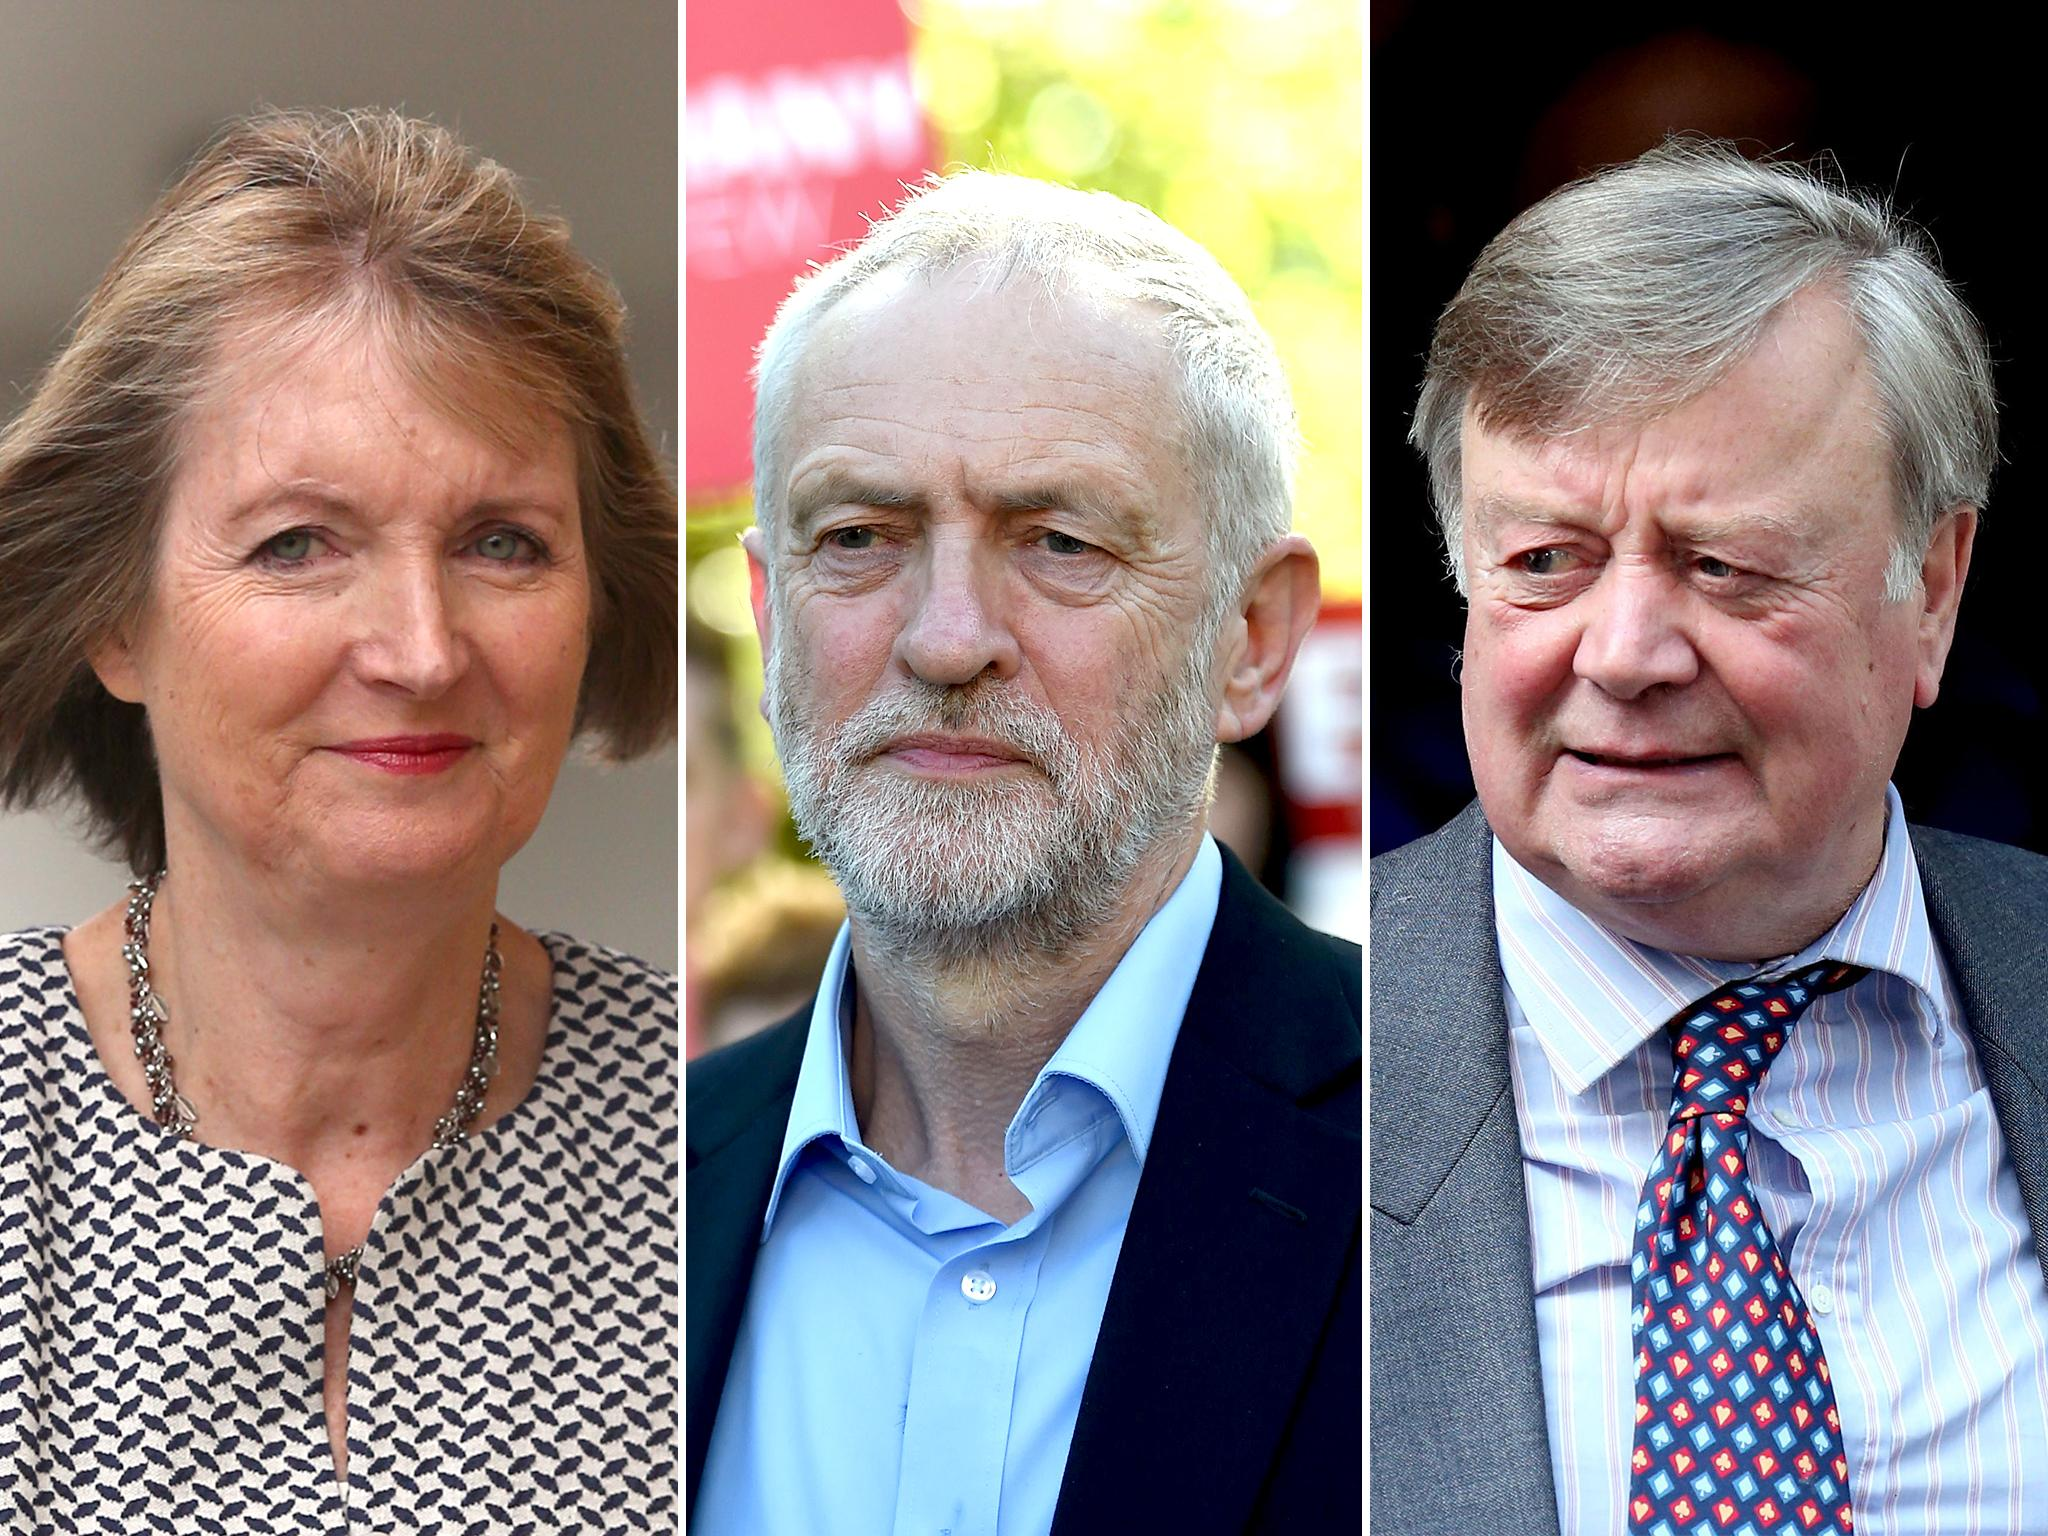 What will happen if the opponents of a no-deal Brexit fail to unite behind an alternative prime minister?